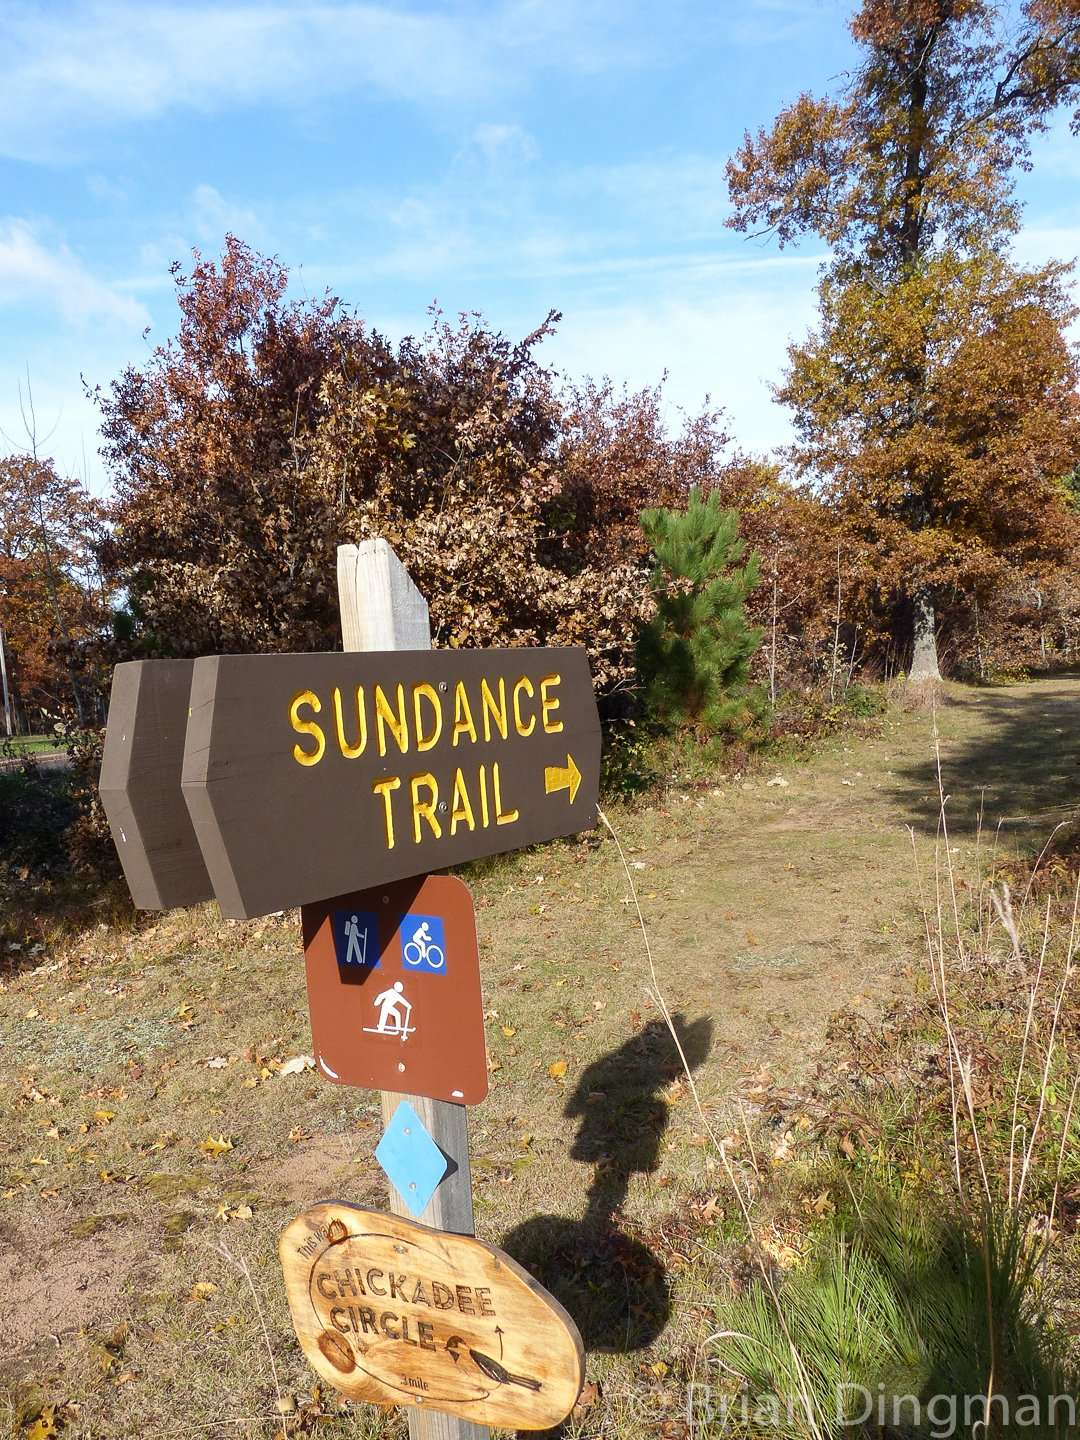 The Sundance Trail is a one-mile self-guided interpretive walk at St. Croix State Park